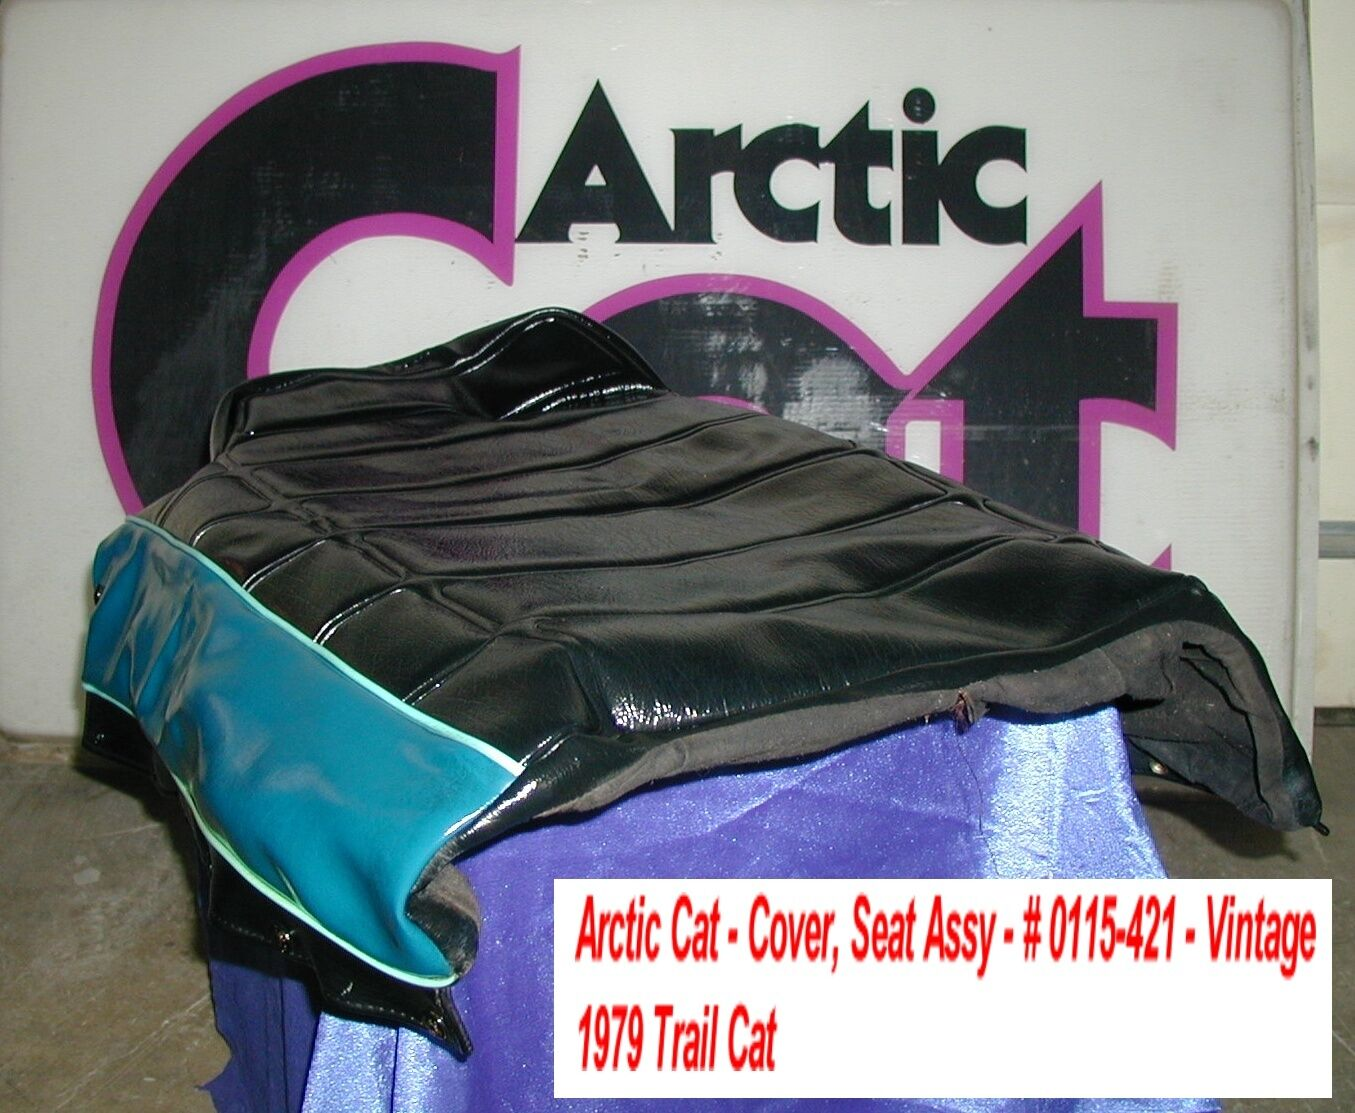 Arctic Cat Seat Cover Ass'y Trail Cat Vintage